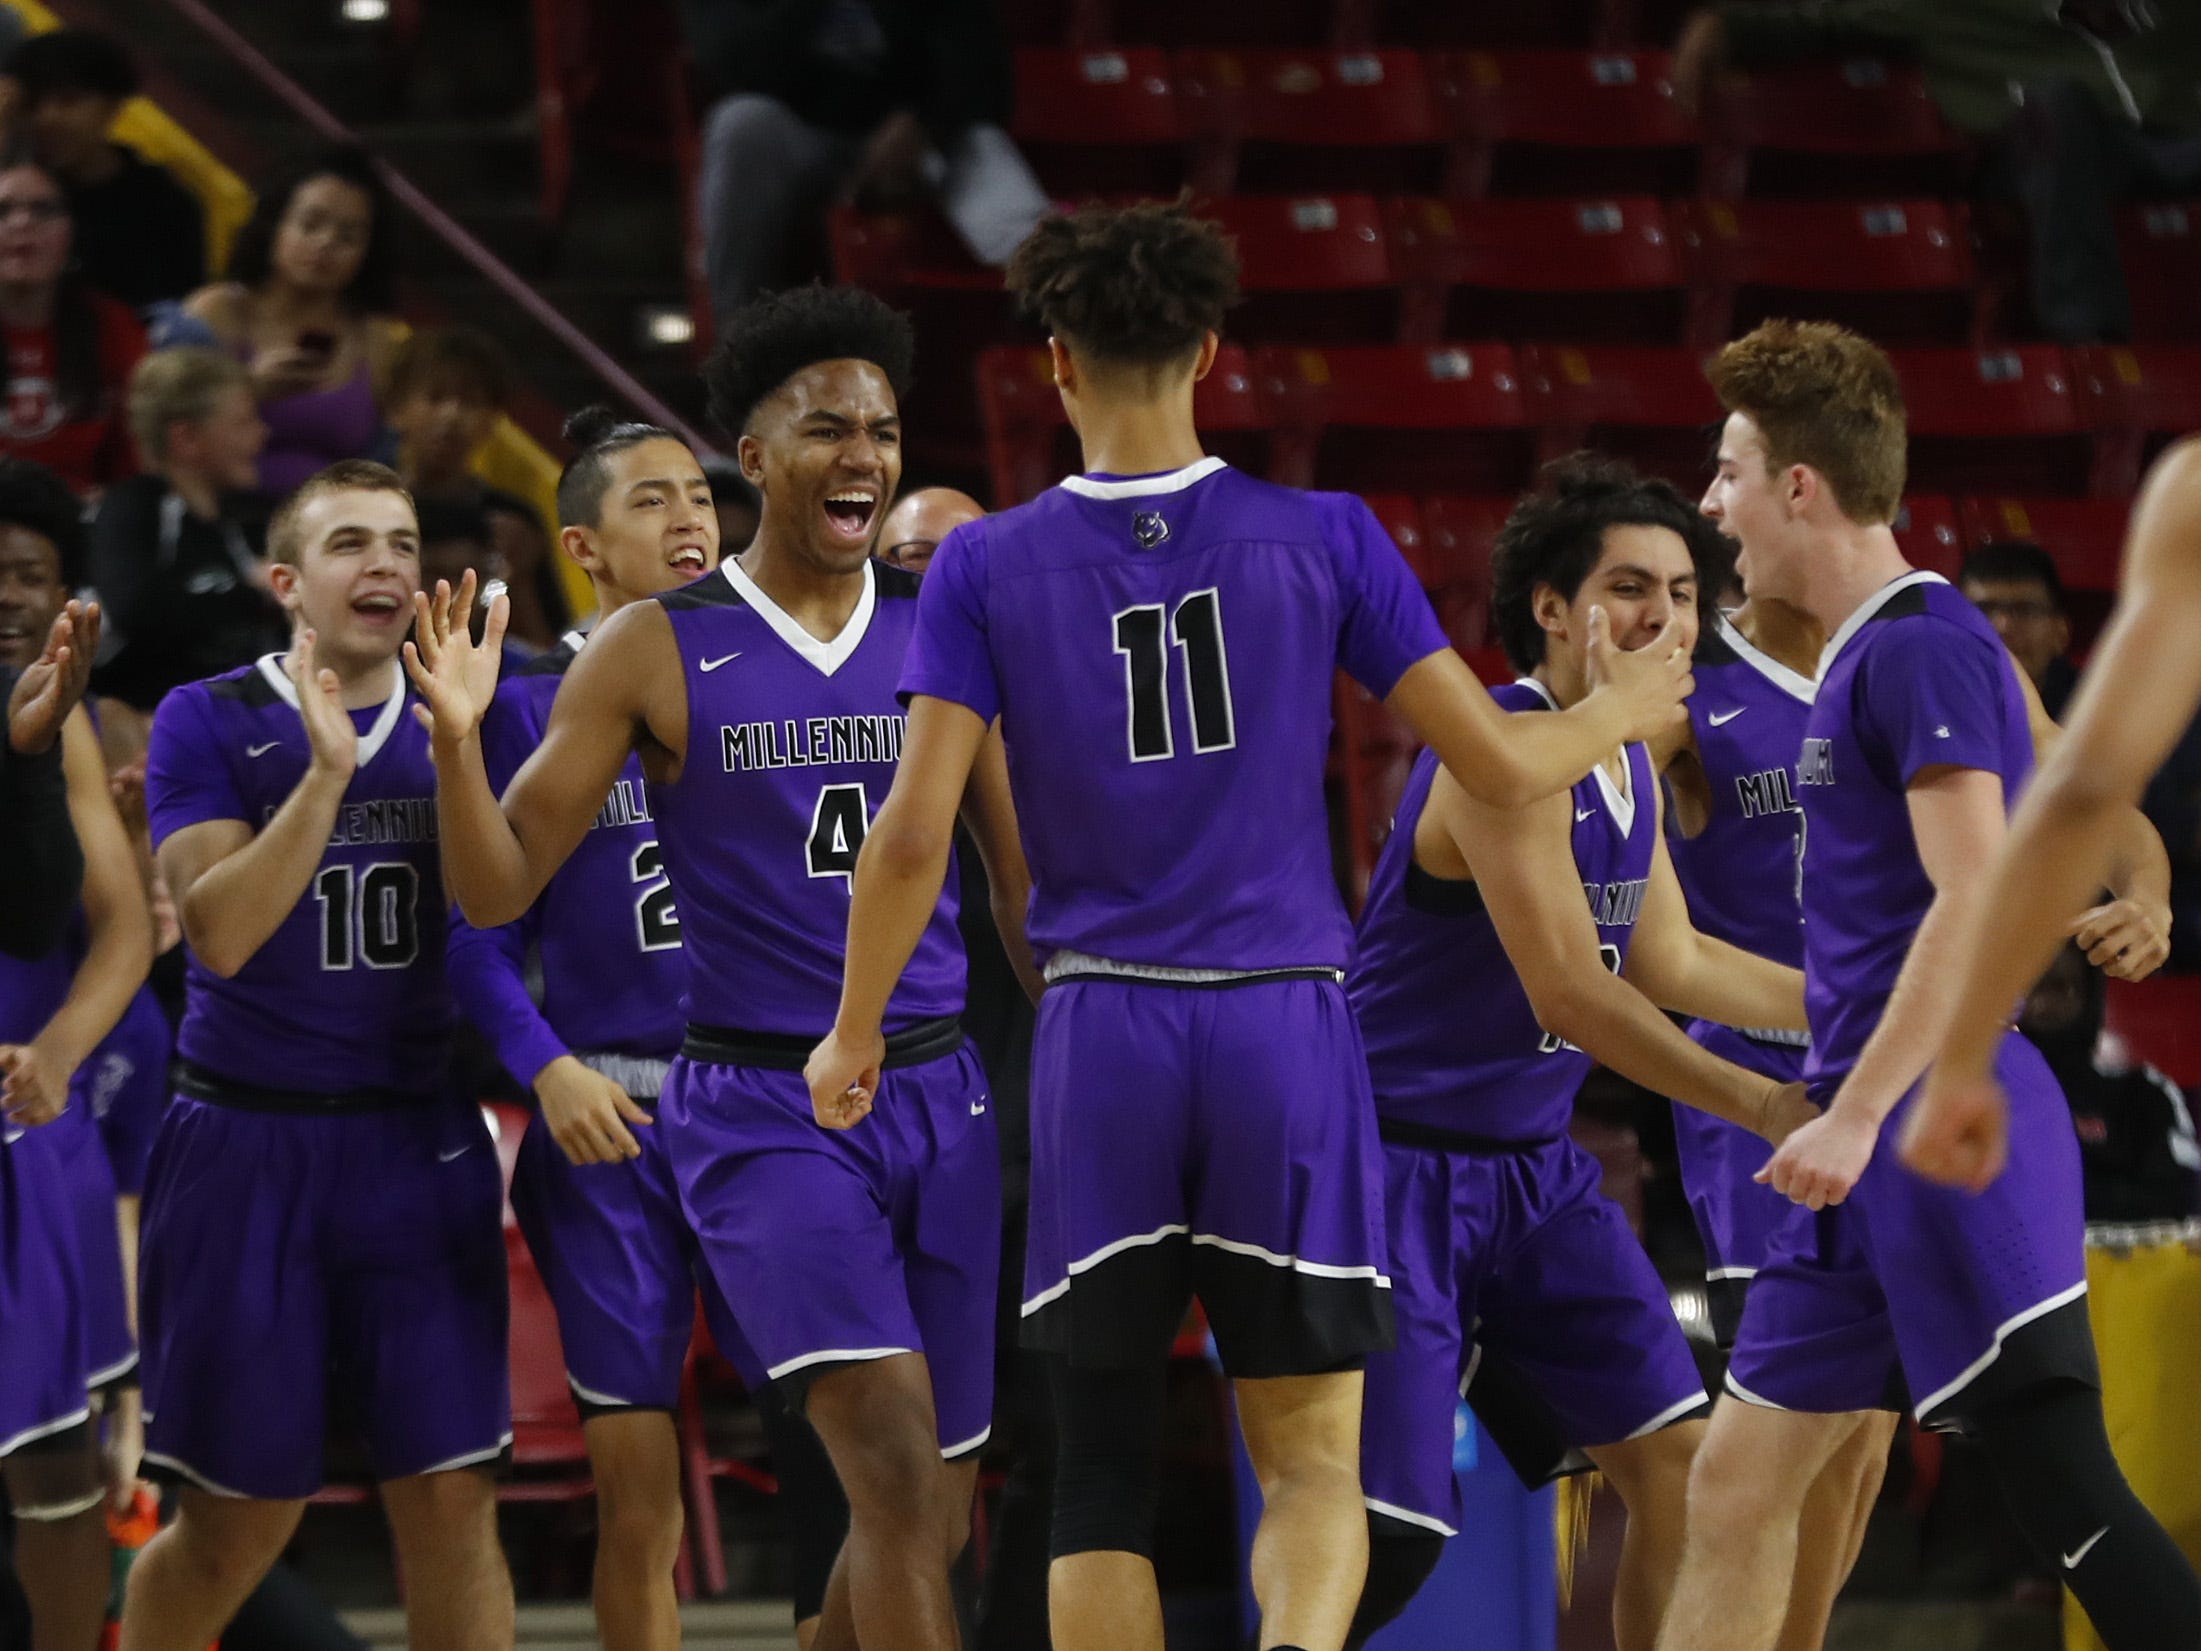 Millennium's Caleb Wright (4) celebrates with Coleman Fields (11) after a basket and a Apollo timeout during the 5A boys basketball state semifinal game at Wells Fargo Arena in Tempe, Ariz. on February 18, 2019.